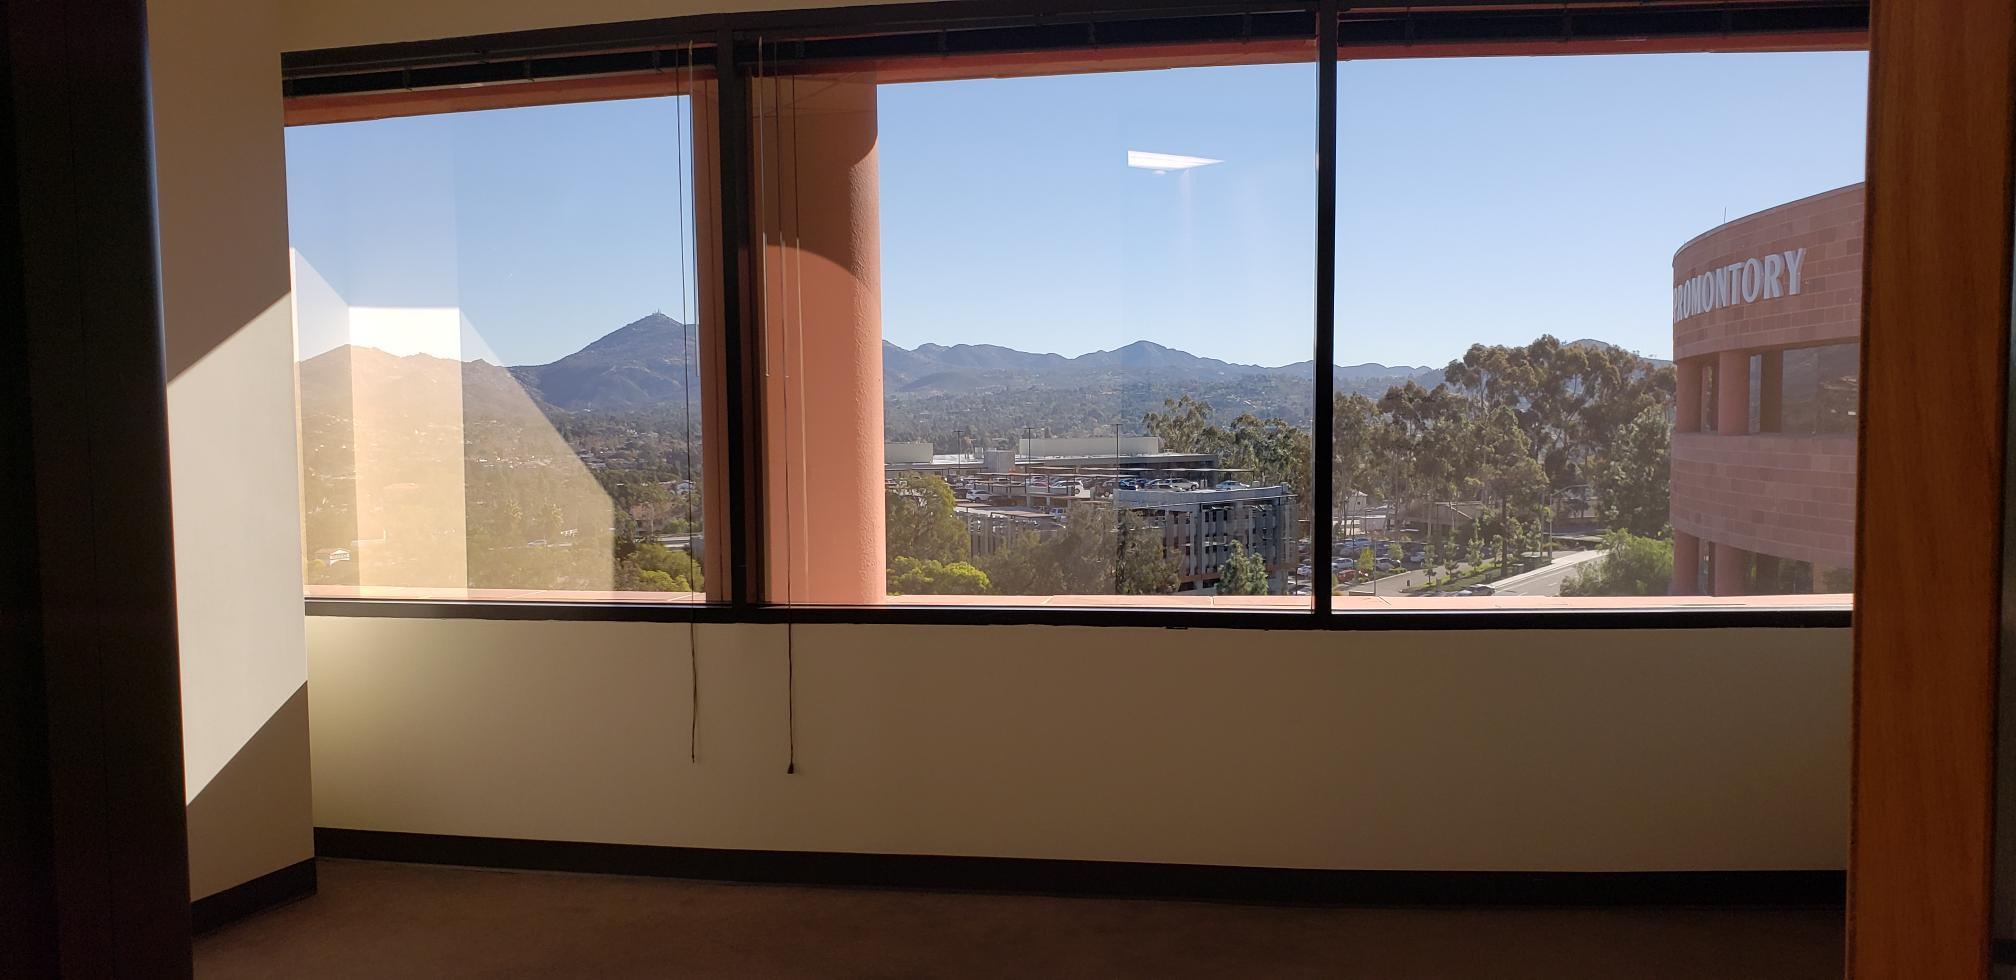 (RB1) Rancho Bernardo - 2 Office Mini-Suite #359 & #360